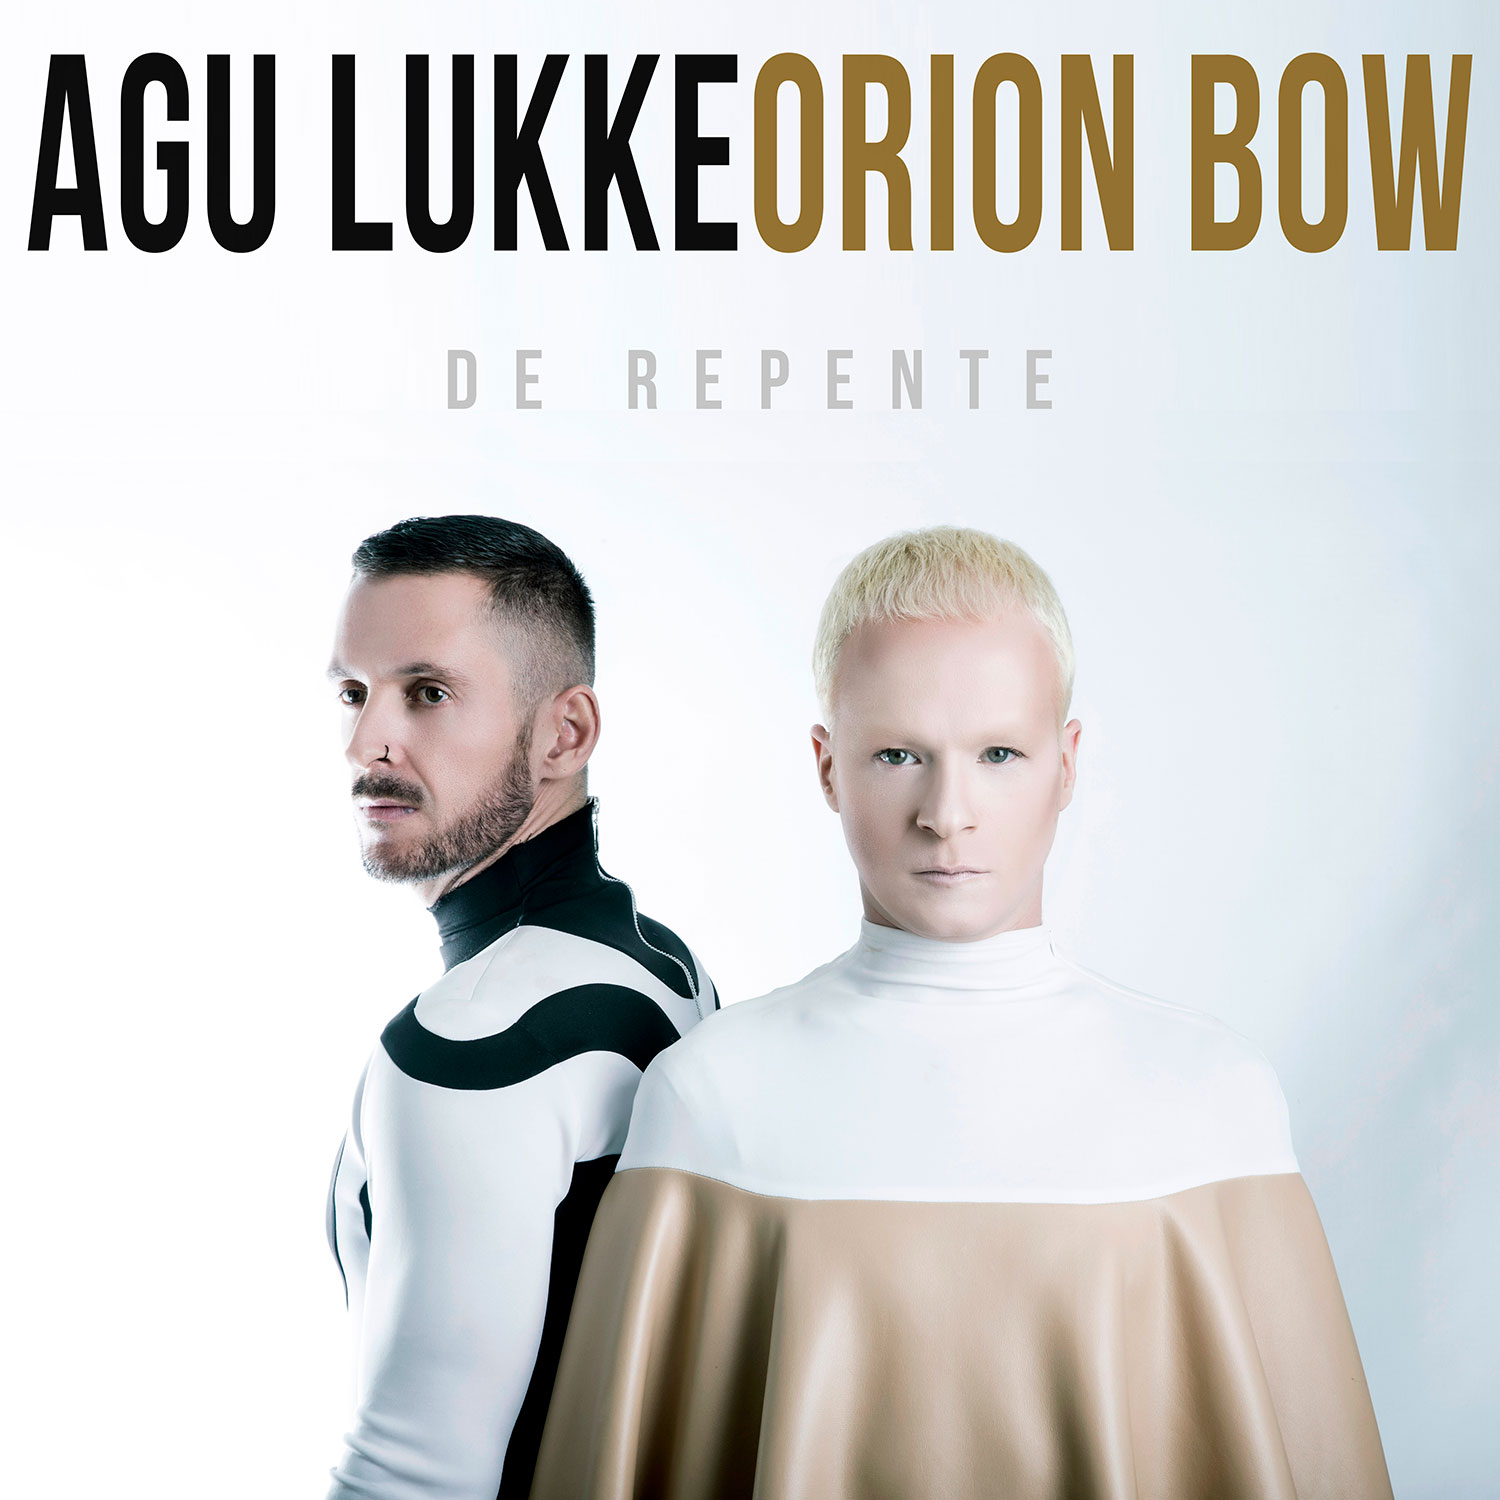 Agu Lukke and Orion Bow - De Repente